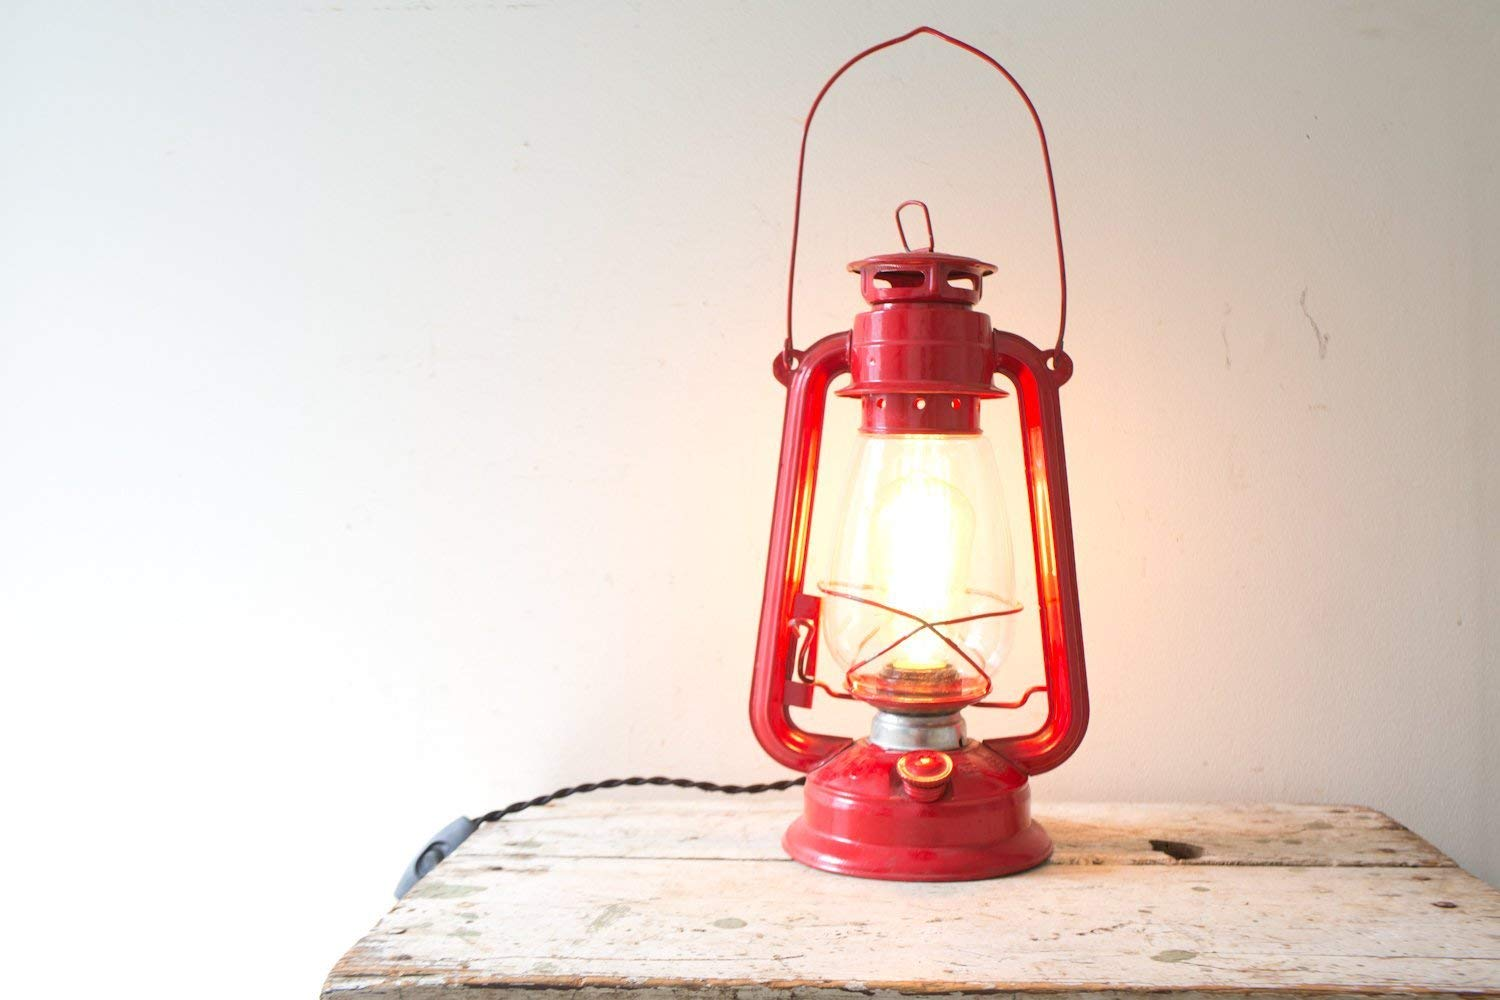 Modern Kerosene Lamp Cheap Lantern Kerosene Lamp Find Lantern Kerosene Lamp Deals On